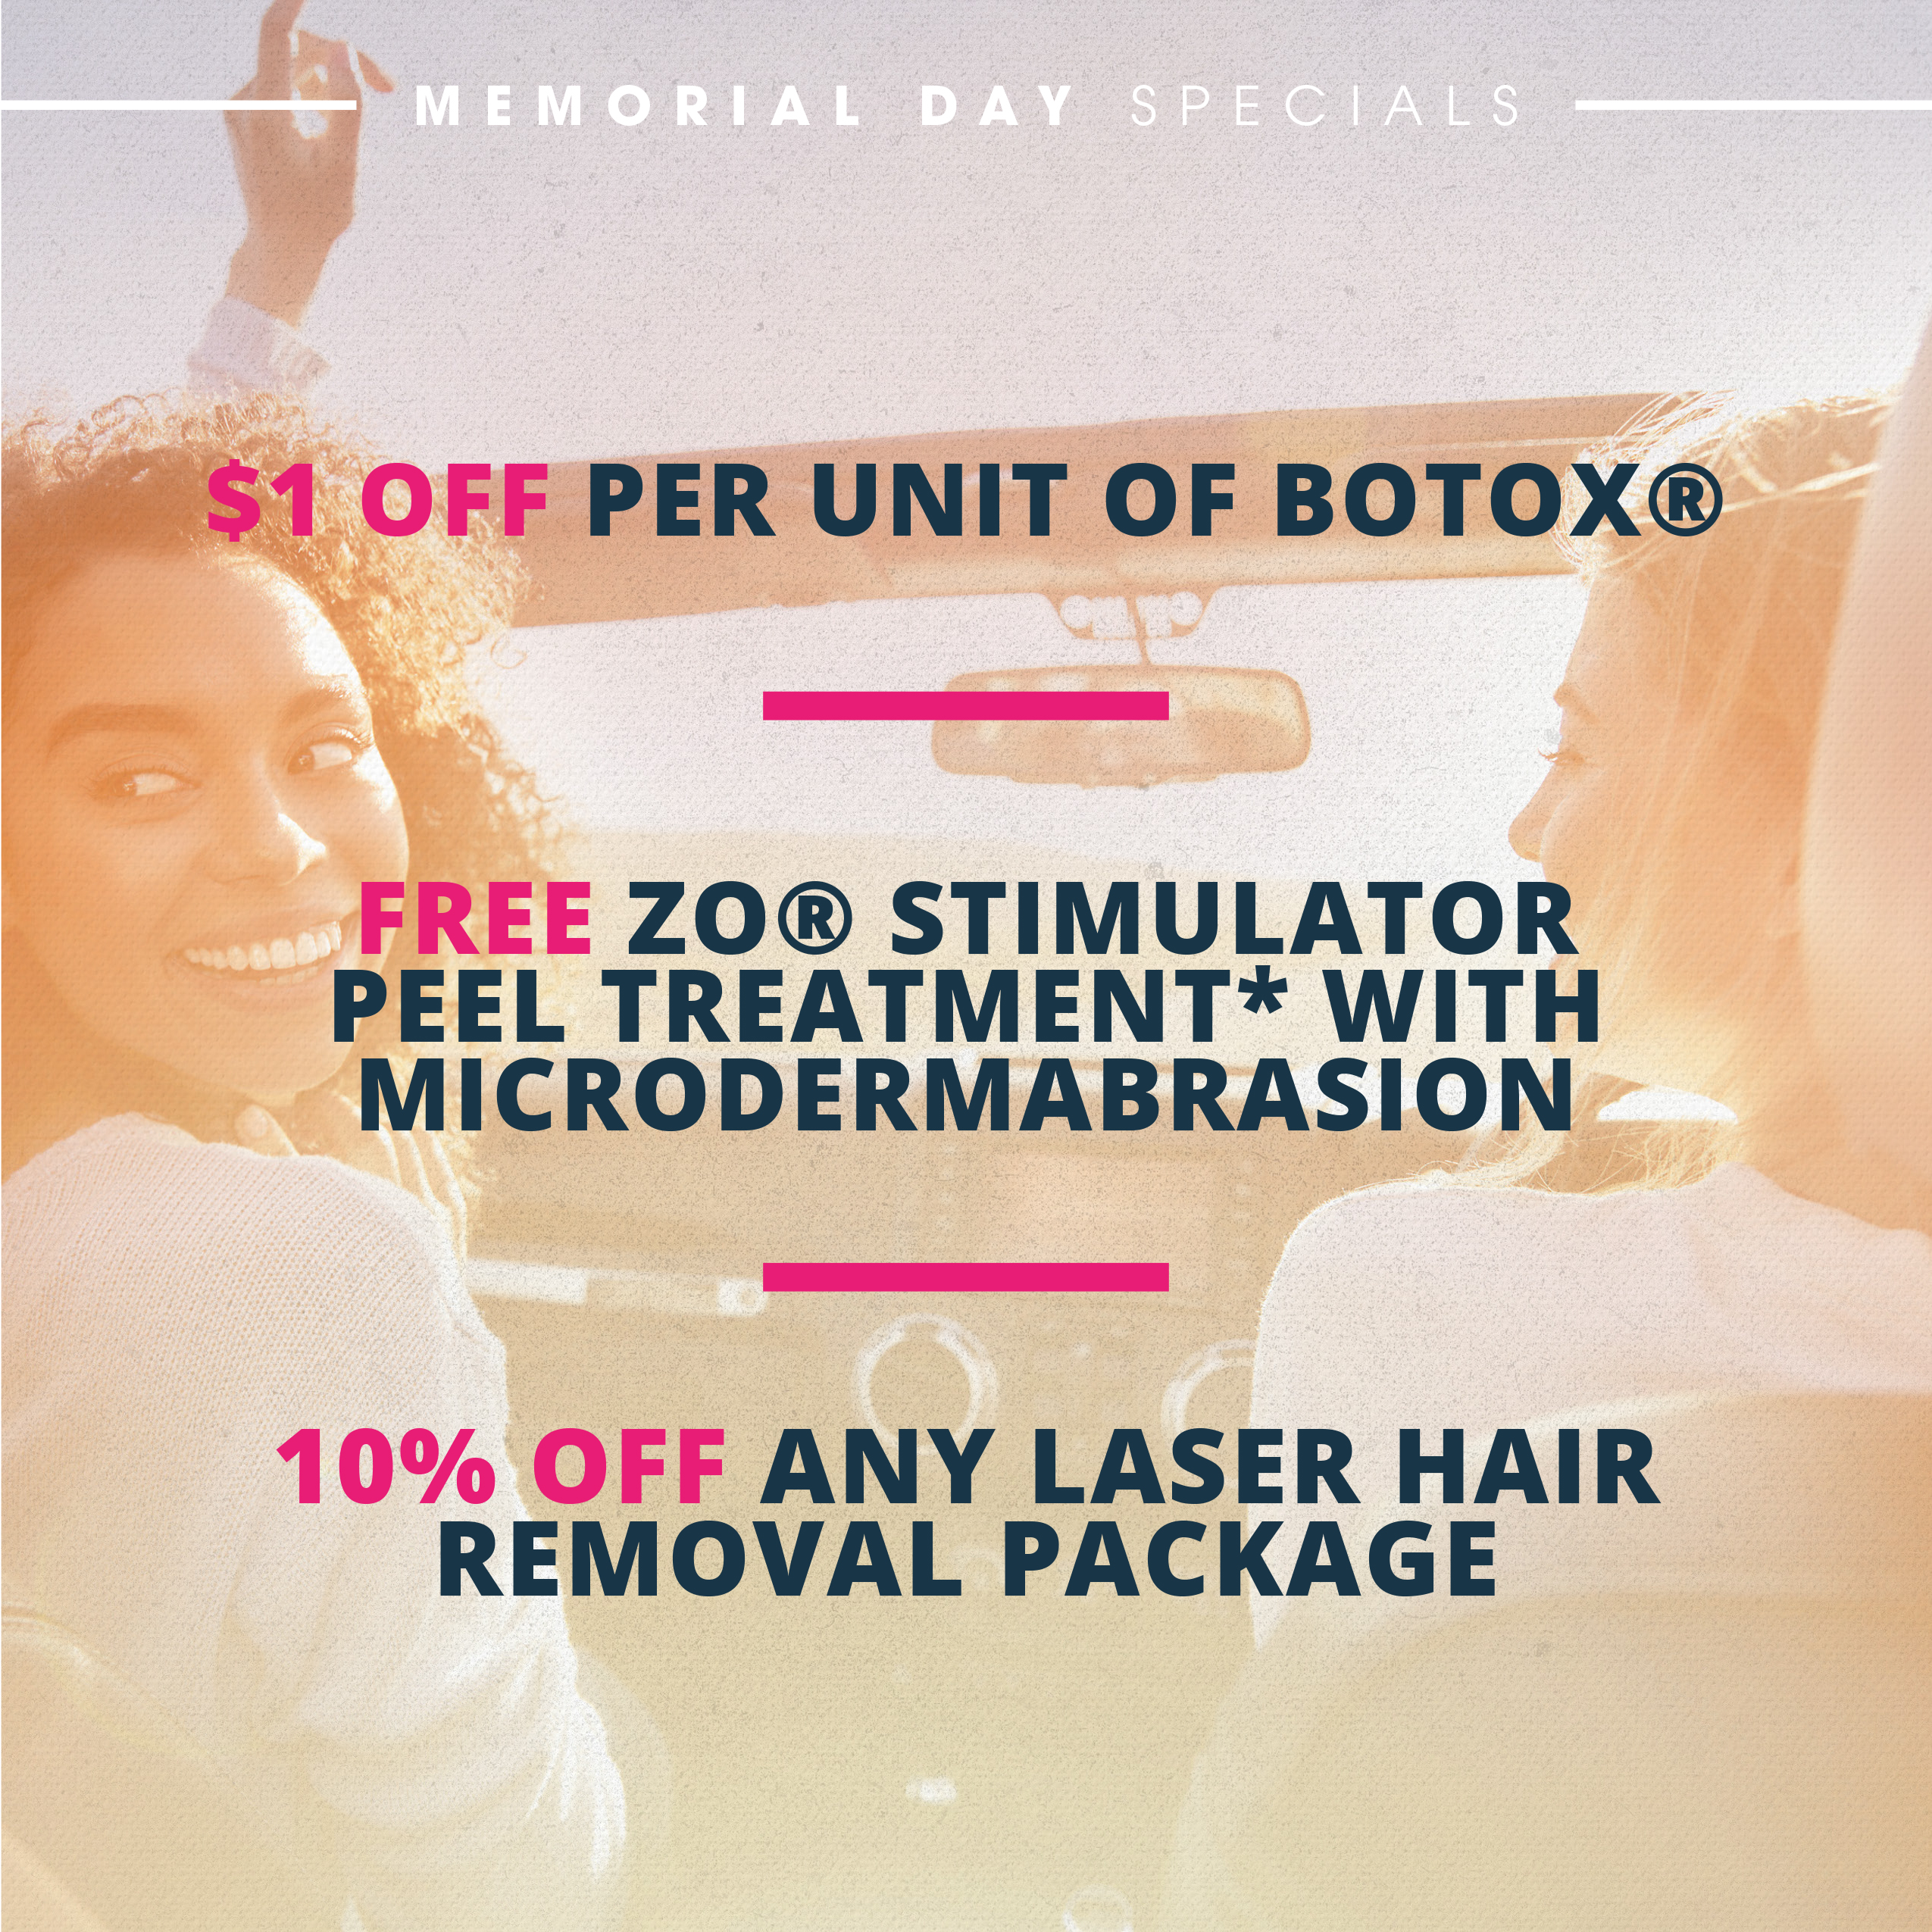 Gainesville Medical Spa - Botox, Microdermabrasion, Laser Hair Removal